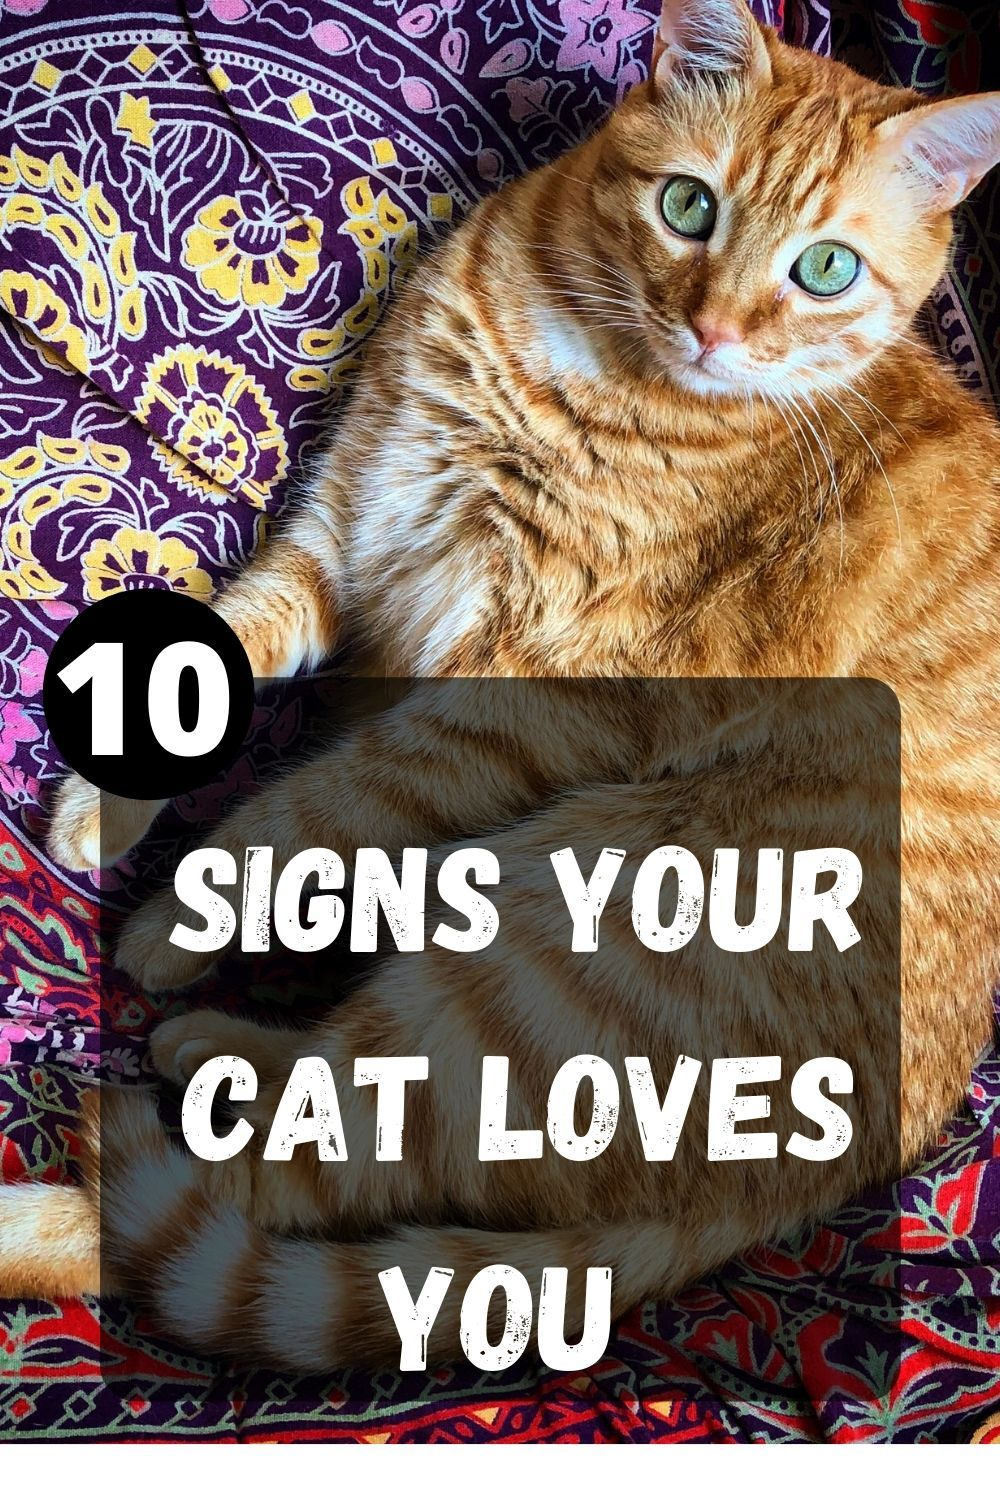 10 Signs Your Cat Loves You Welfar4us In 2020 Cute Cats And Dogs Cat Love Grey Kitten